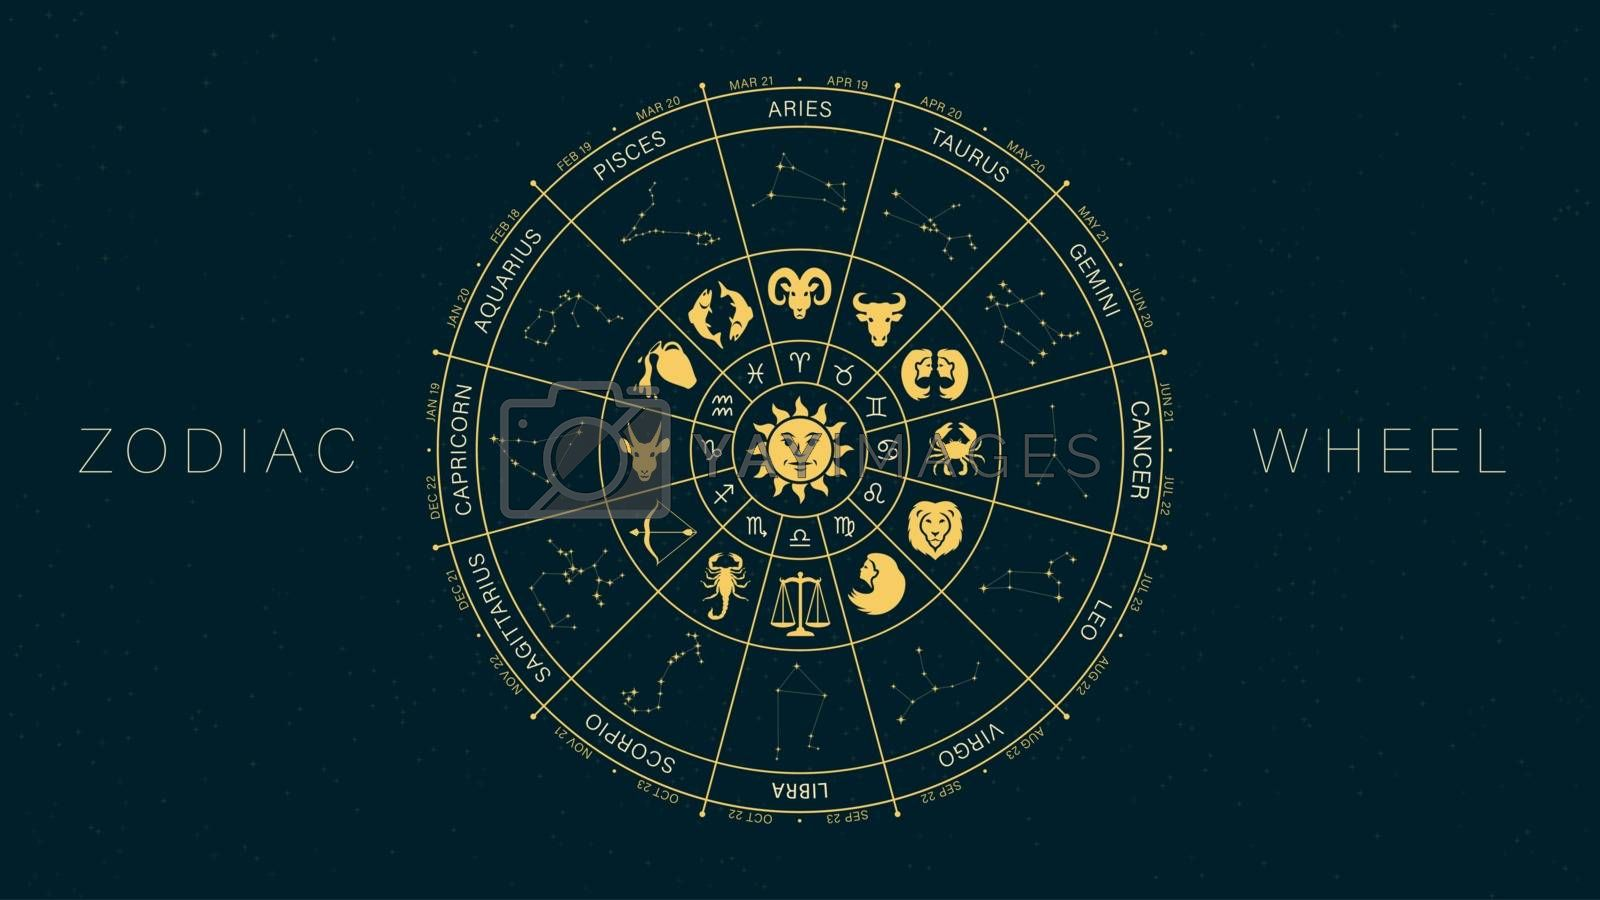 Detailed flat vector illustration of a Zodiac Wheel on top of a dim star background. Signs, icons, constellations and dates.